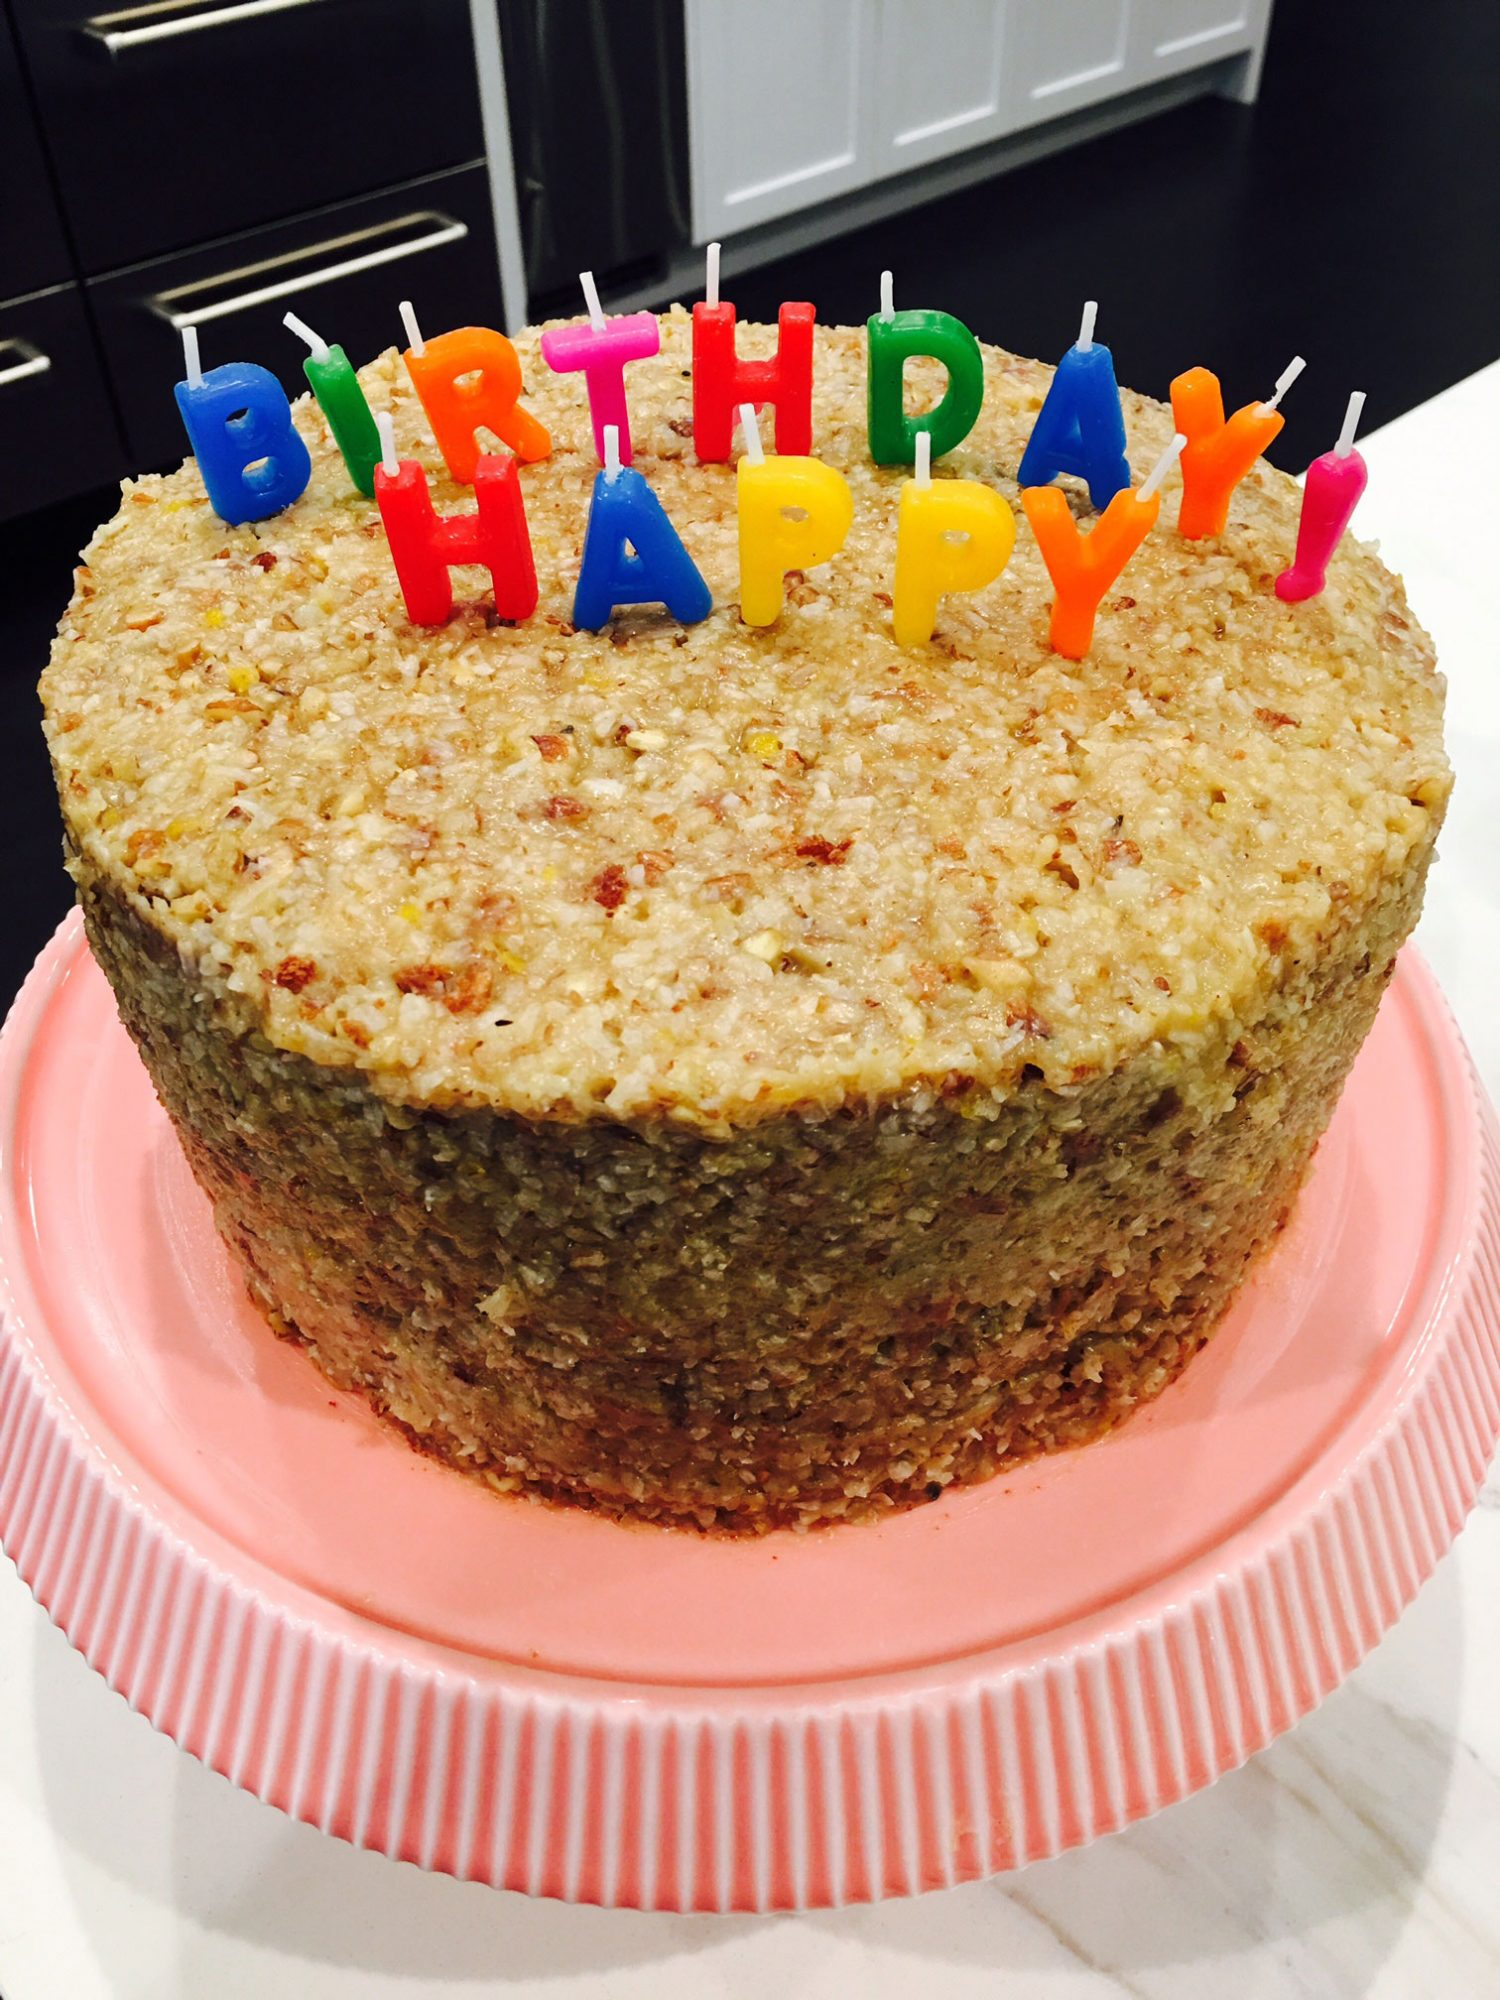 Garth Brooks Birthday Cake German Chocolate Cake